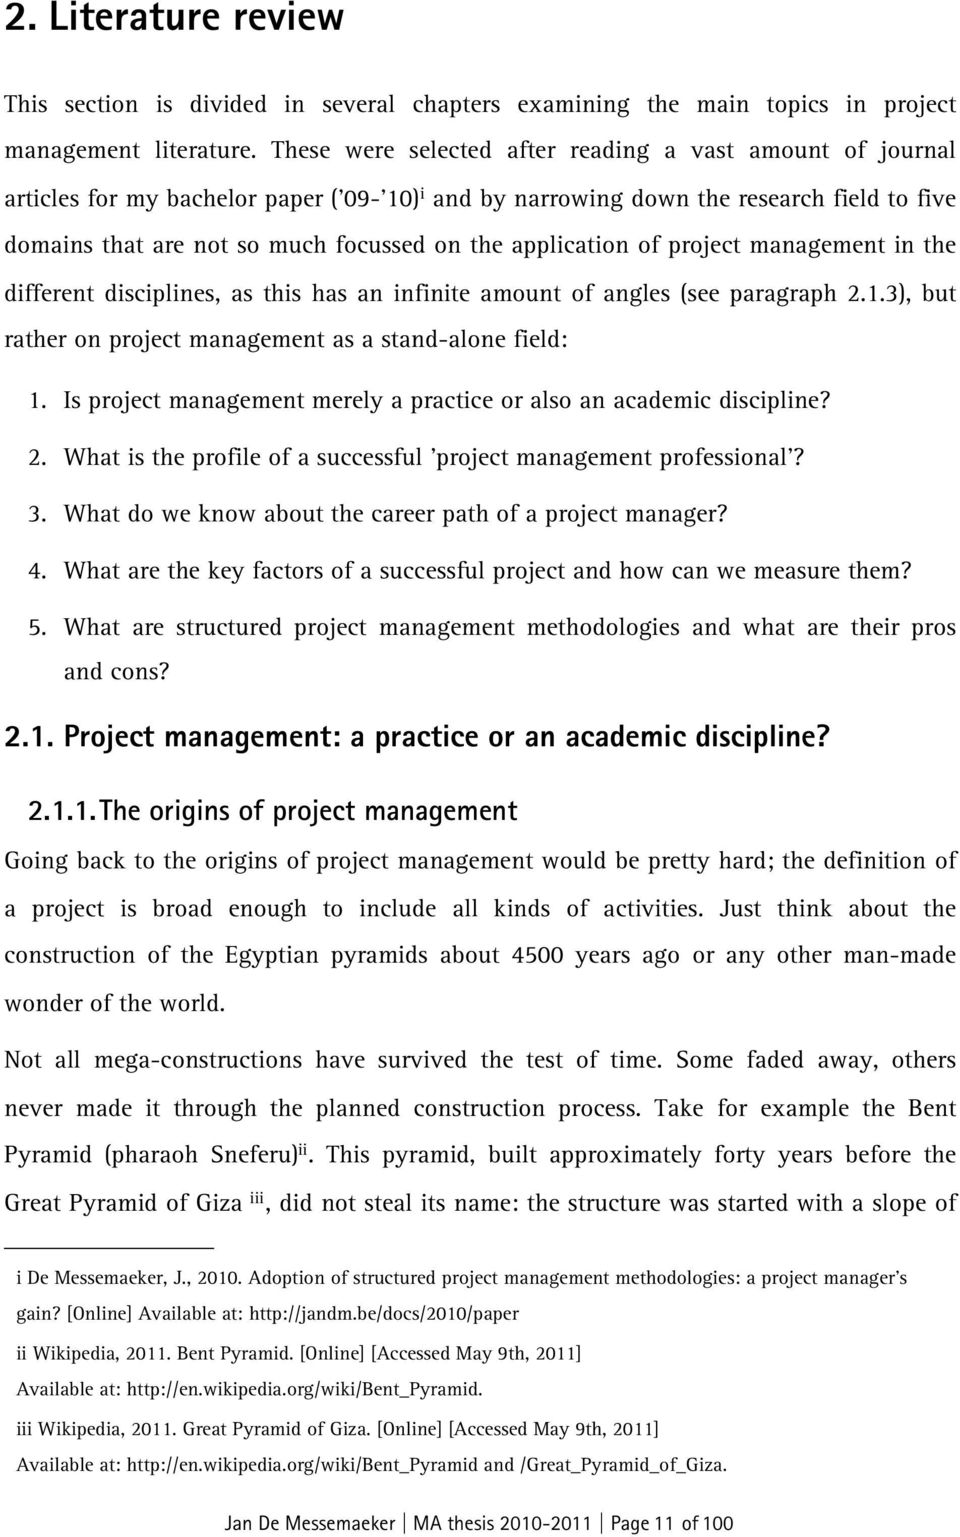 application of project management in the different disciplines, as this has an infinite amount of angles (see paragraph 2.1.3), but rather on project management as a stand-alone field: 1.